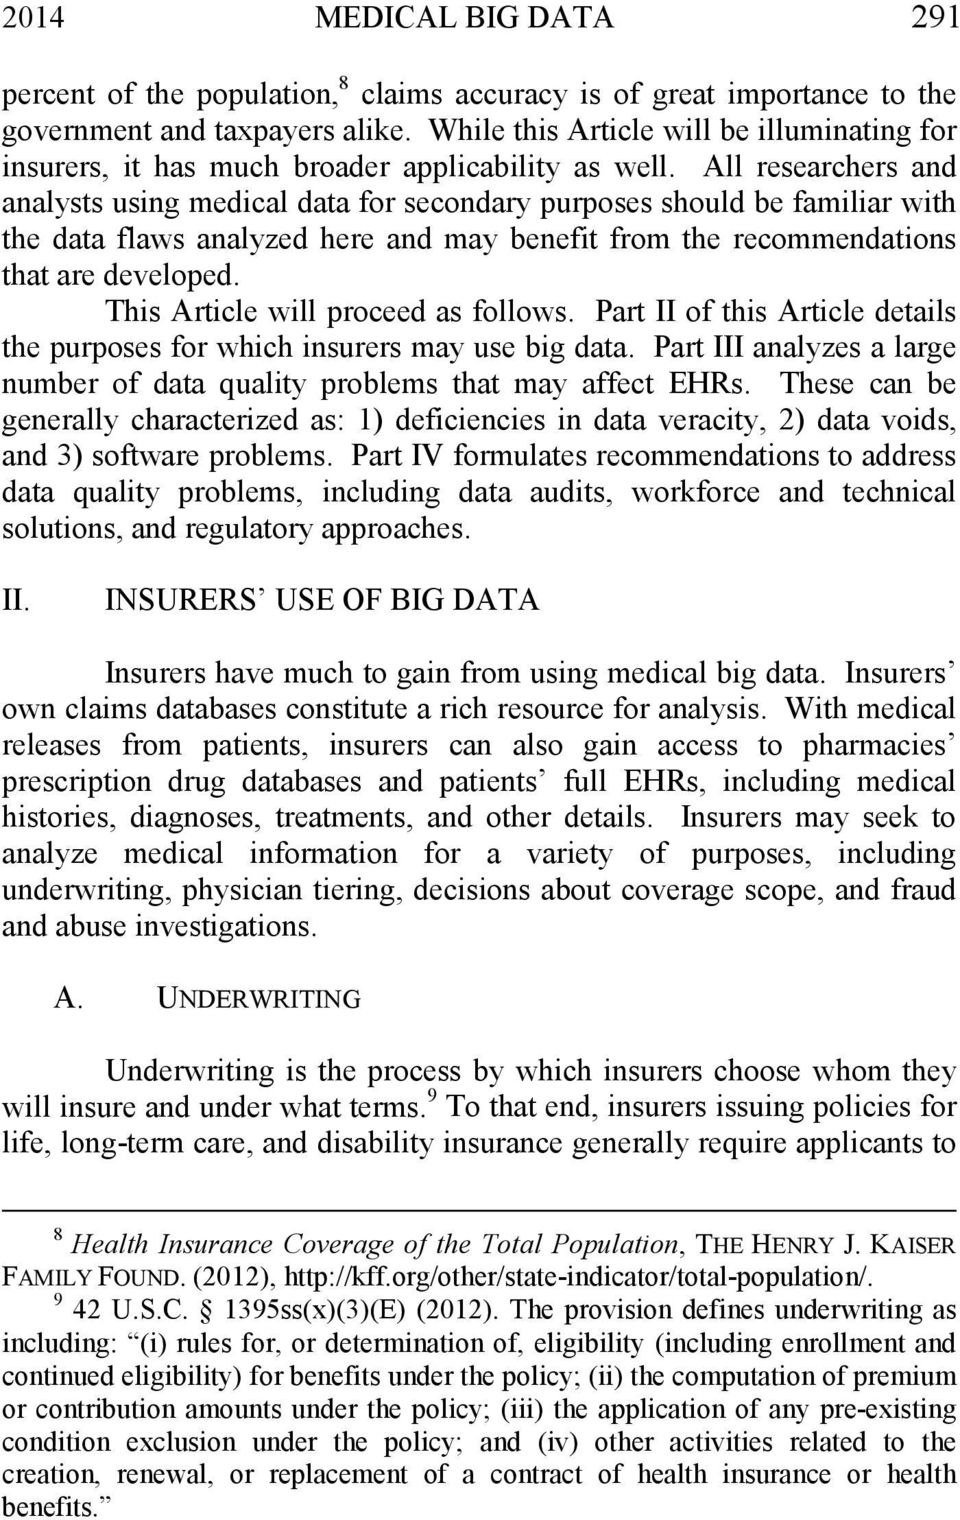 All researchers and analysts using medical data for secondary purposes should be familiar with the data flaws analyzed here and may benefit from the recommendations that are developed.